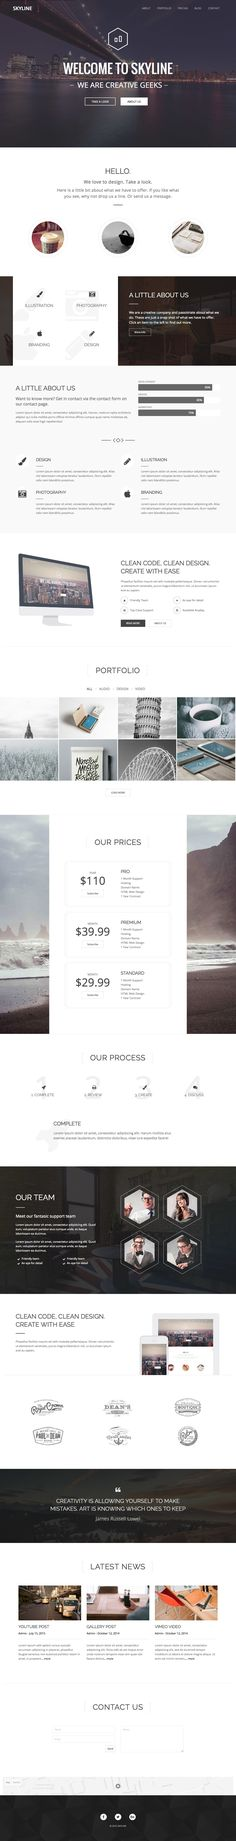 'Skyline' is a multi-page WordPress theme with a One Page layout option for a long scrolling portfolio. The theme comes bundled with Visual Composer and Slider Revolution plugins, saving you a hefty $53. Other features include slideshow, skills graph, portfolio filter, pricing table, team (with more info transitions), client logos, testimonials, news feed and contact form. What's great to see is that Zorbix Themes now have video tutorials for their theme setups.